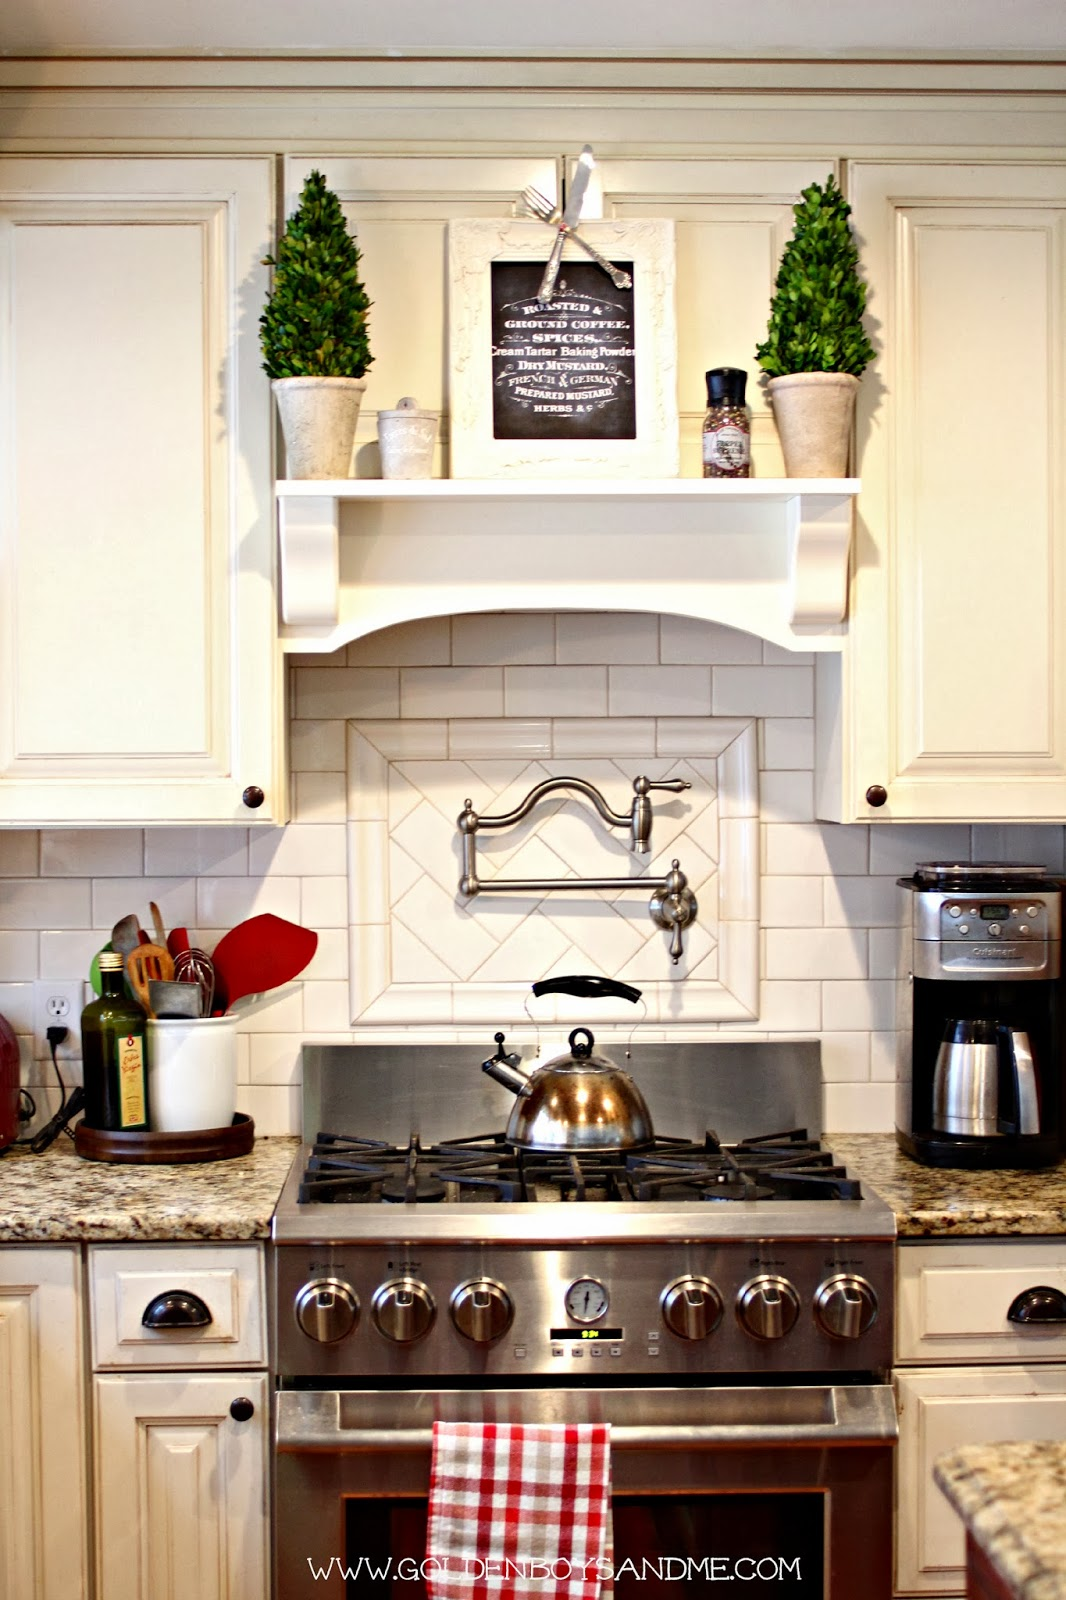 diy range hood mantel with stainless pot filler and white subway tile backsplash | www.goldenboysandme.com